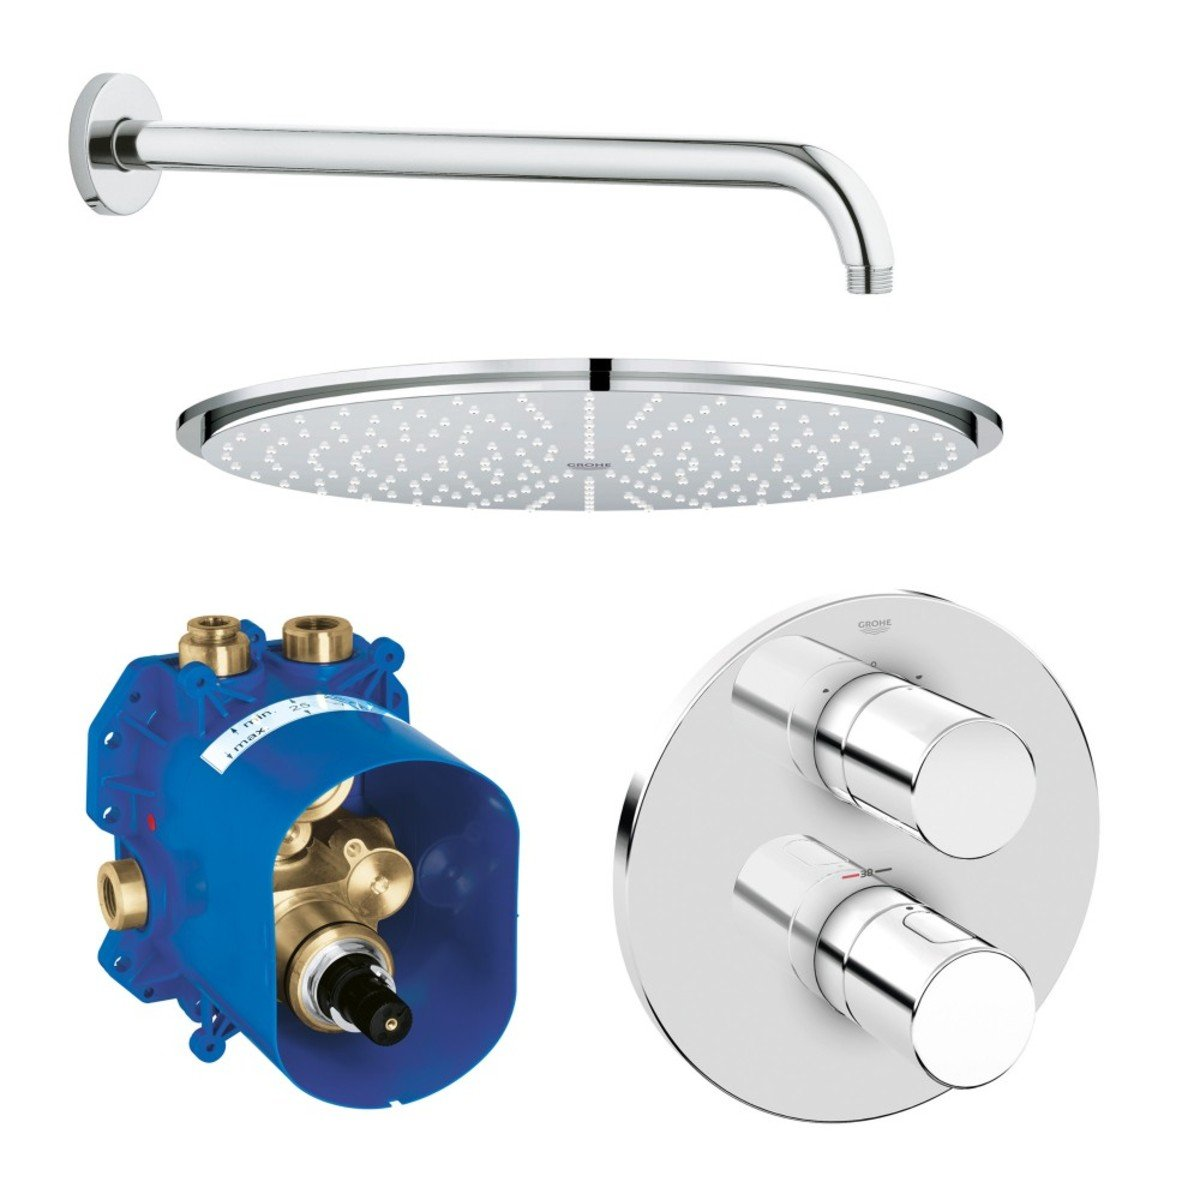 Grohe Grohtherm 3000 Cosmopolitan Mitigeur Douche Thermostatique